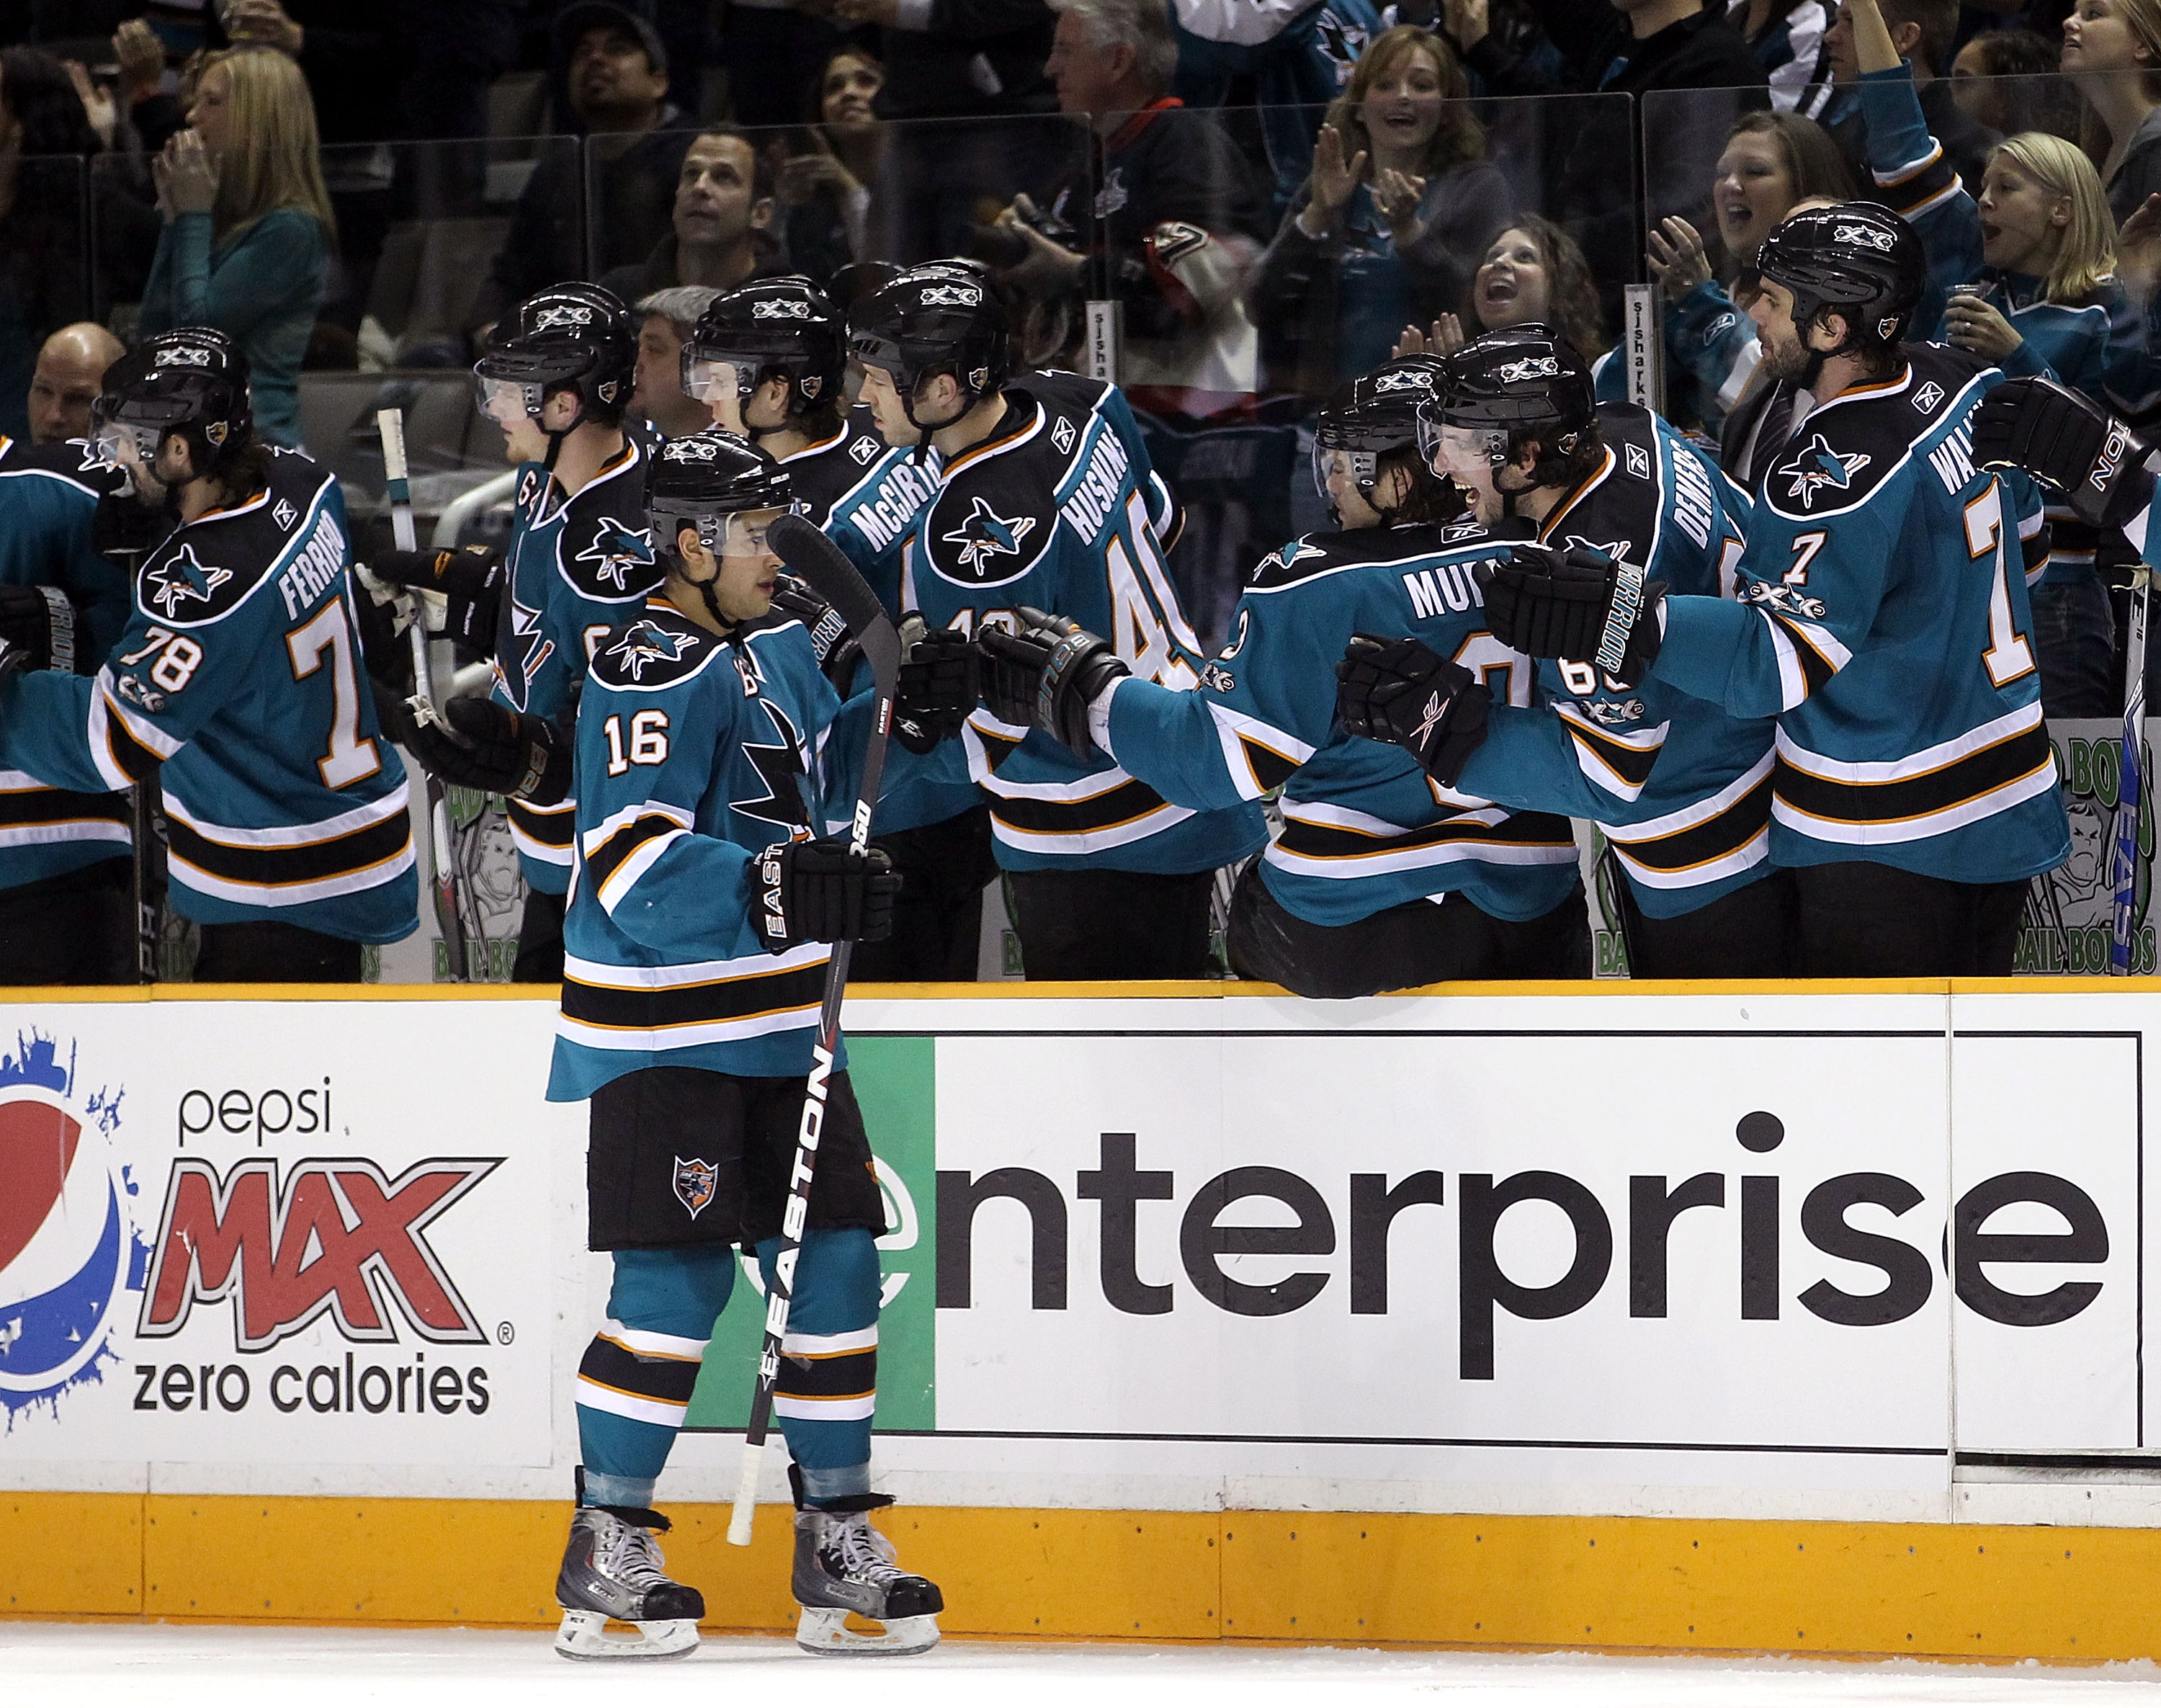 SAN JOSE, CA - JANUARY 22:  Devin Setoguchi #16 of the San Jose Sharks is congratulated by teammates after he scored a goal against the Minnesota Wild at HP Pavilion on January 22, 2011 in San Jose, California.  (Photo by Ezra Shaw/Getty Images)